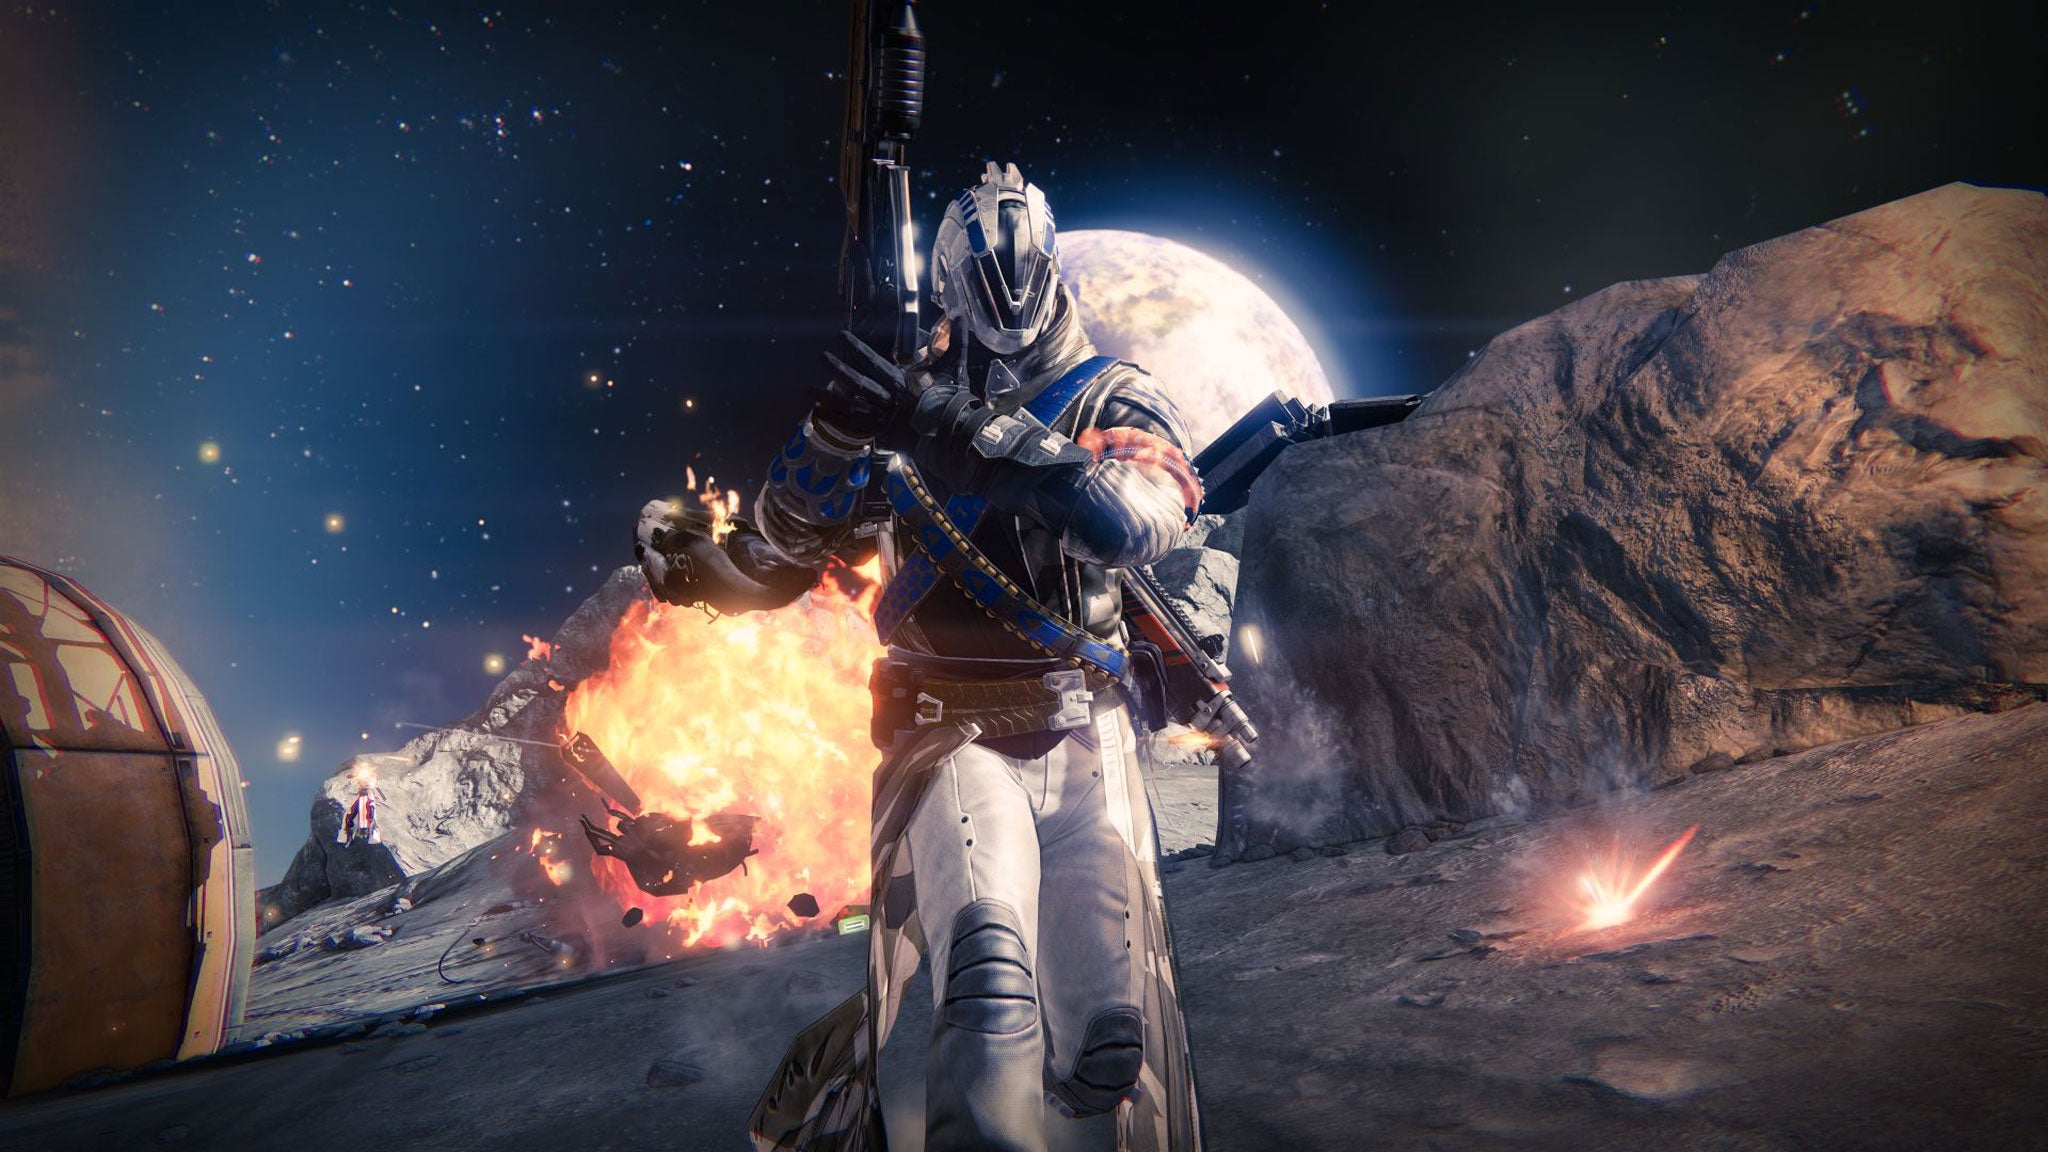 Destiny House Of Wolves Second Expansion Announced But Misses